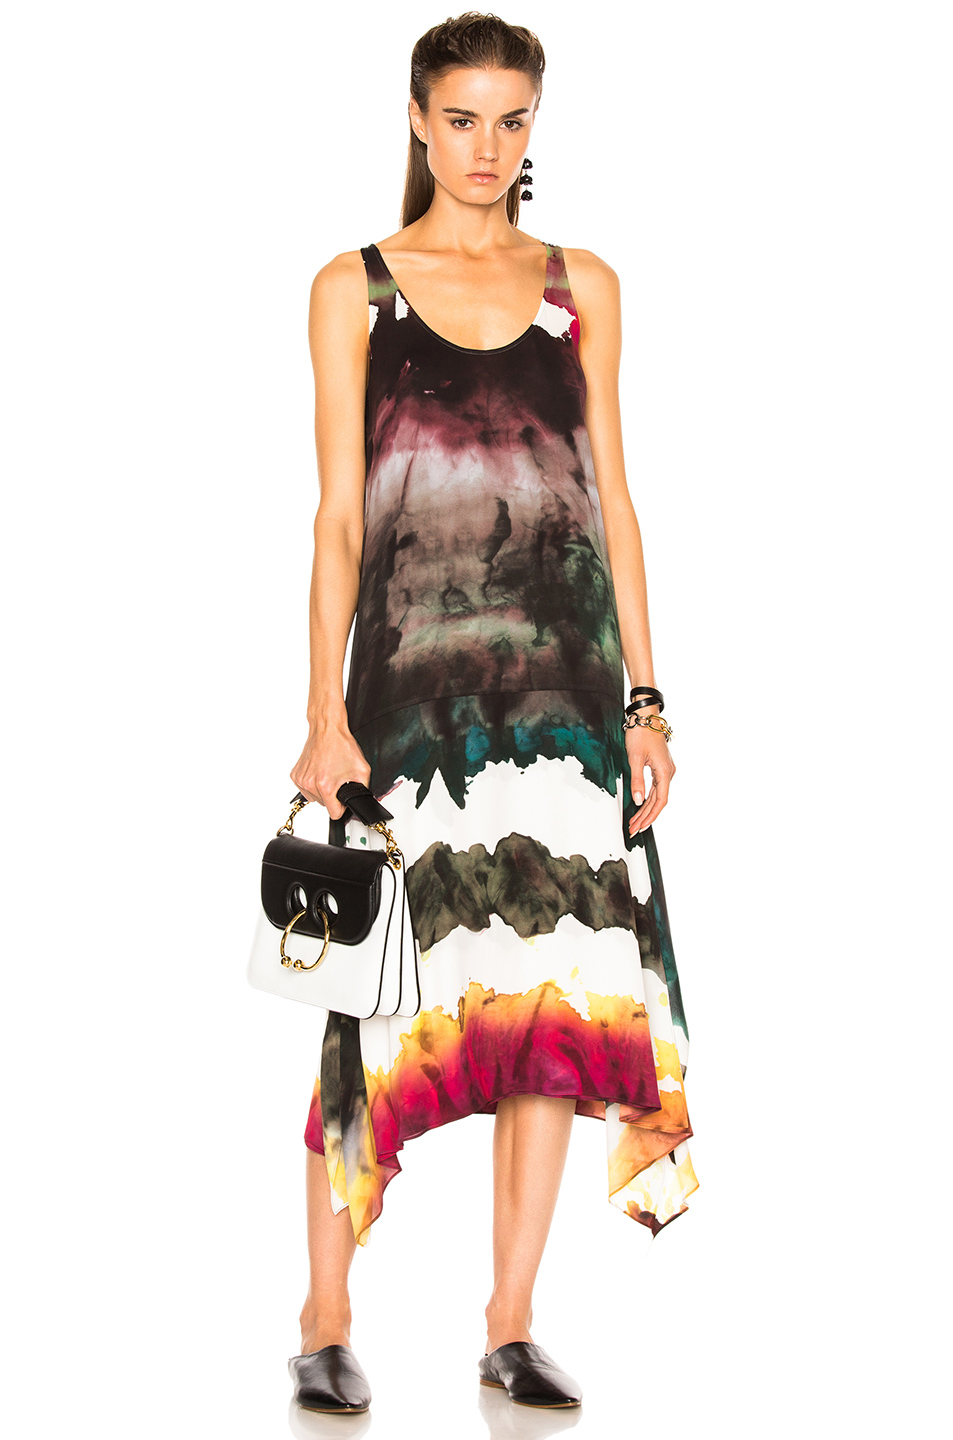 Acne Studios Saleh Dress in Abstract,Green,Ombre and Tie Dye,Pink